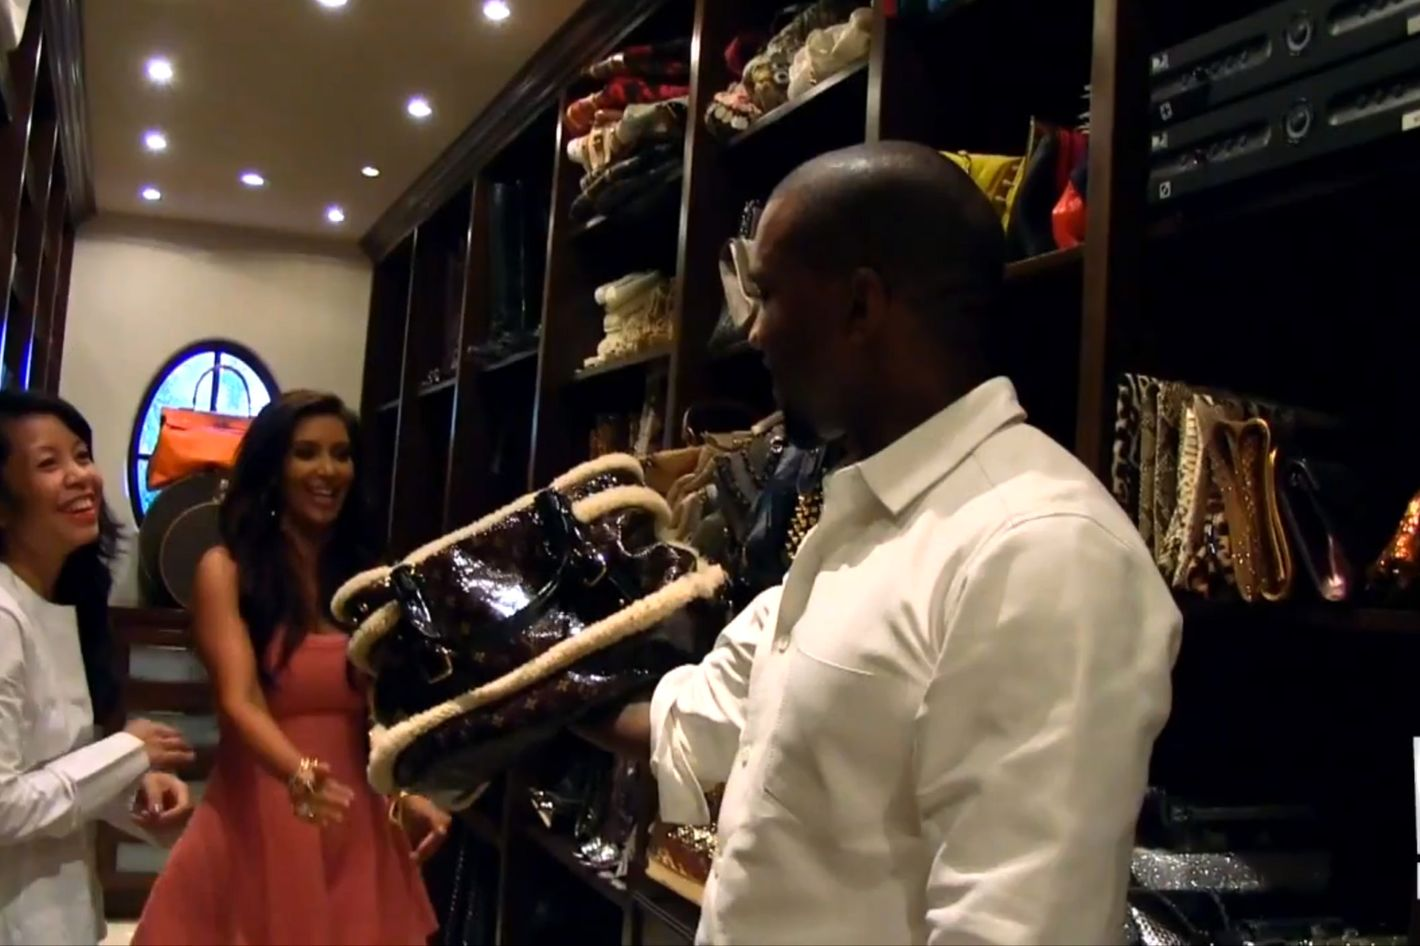 Attractive U0027Fashion Designeru0027 Kanye West Gives Kim Kardashian A Full Clothing Makeover  So She Can Be U0027More Of An Individualu0027